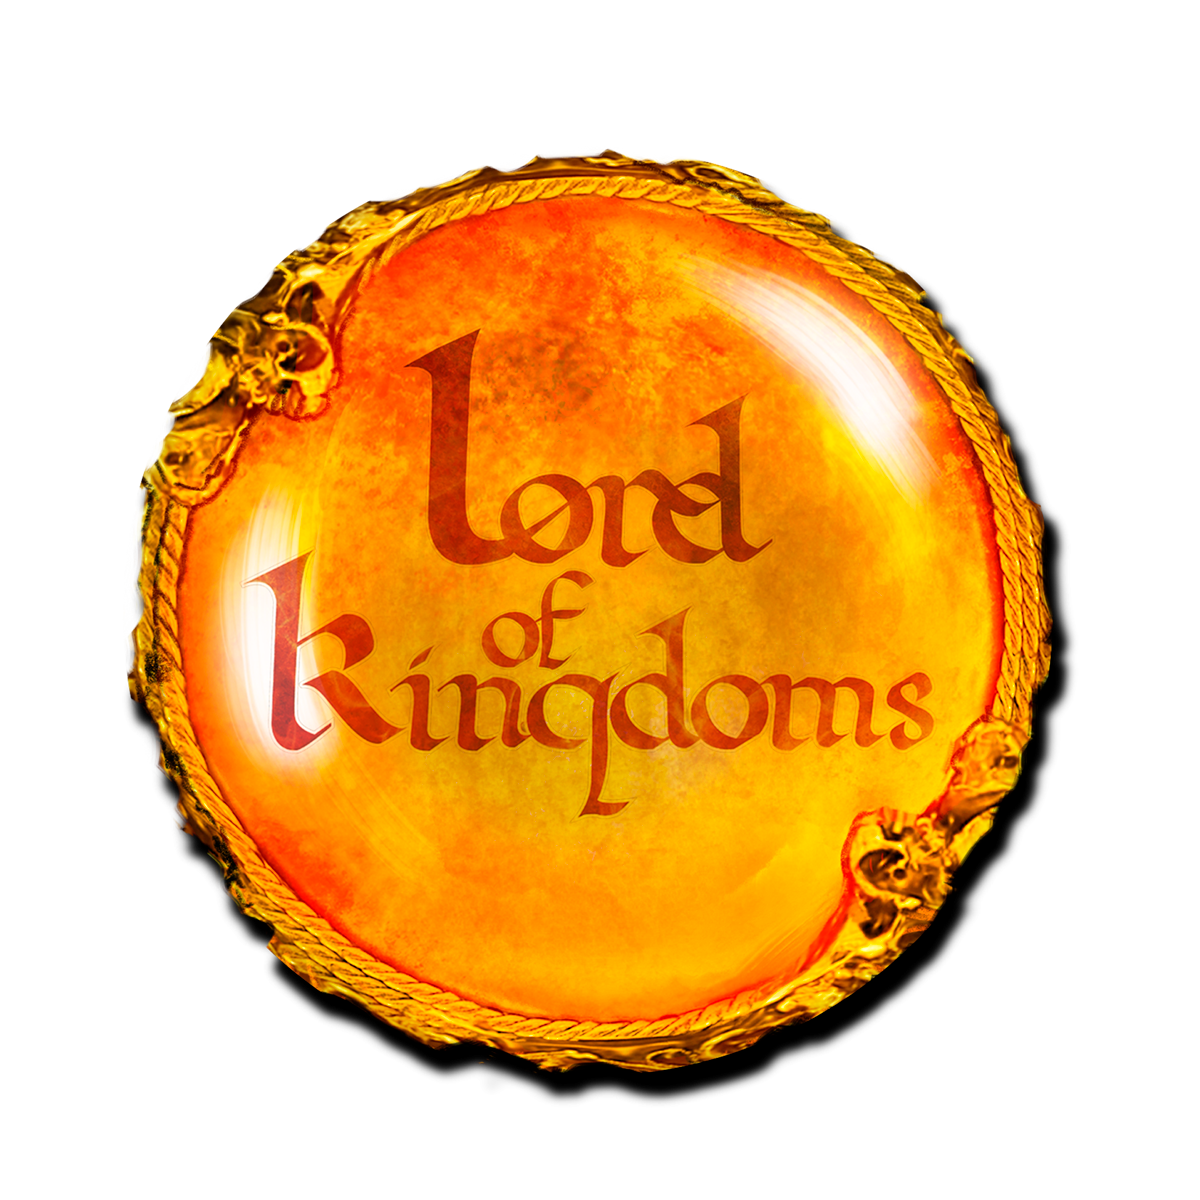 Lord of Kingdoms